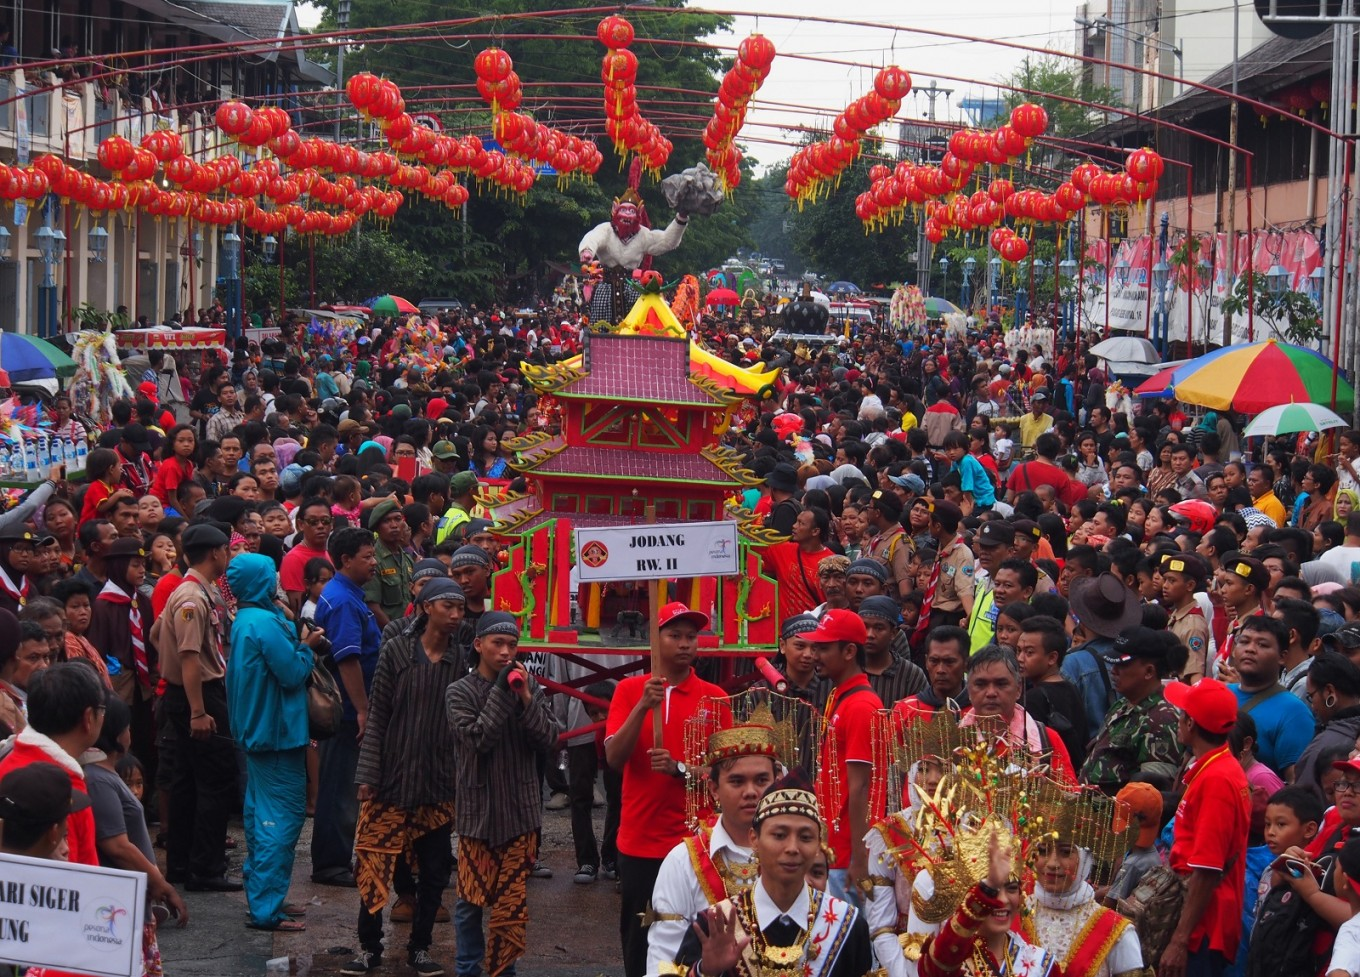 A parade passes through the Pasar Gede area as part of the Grebeg Sudiro tradition on Jan. 22.